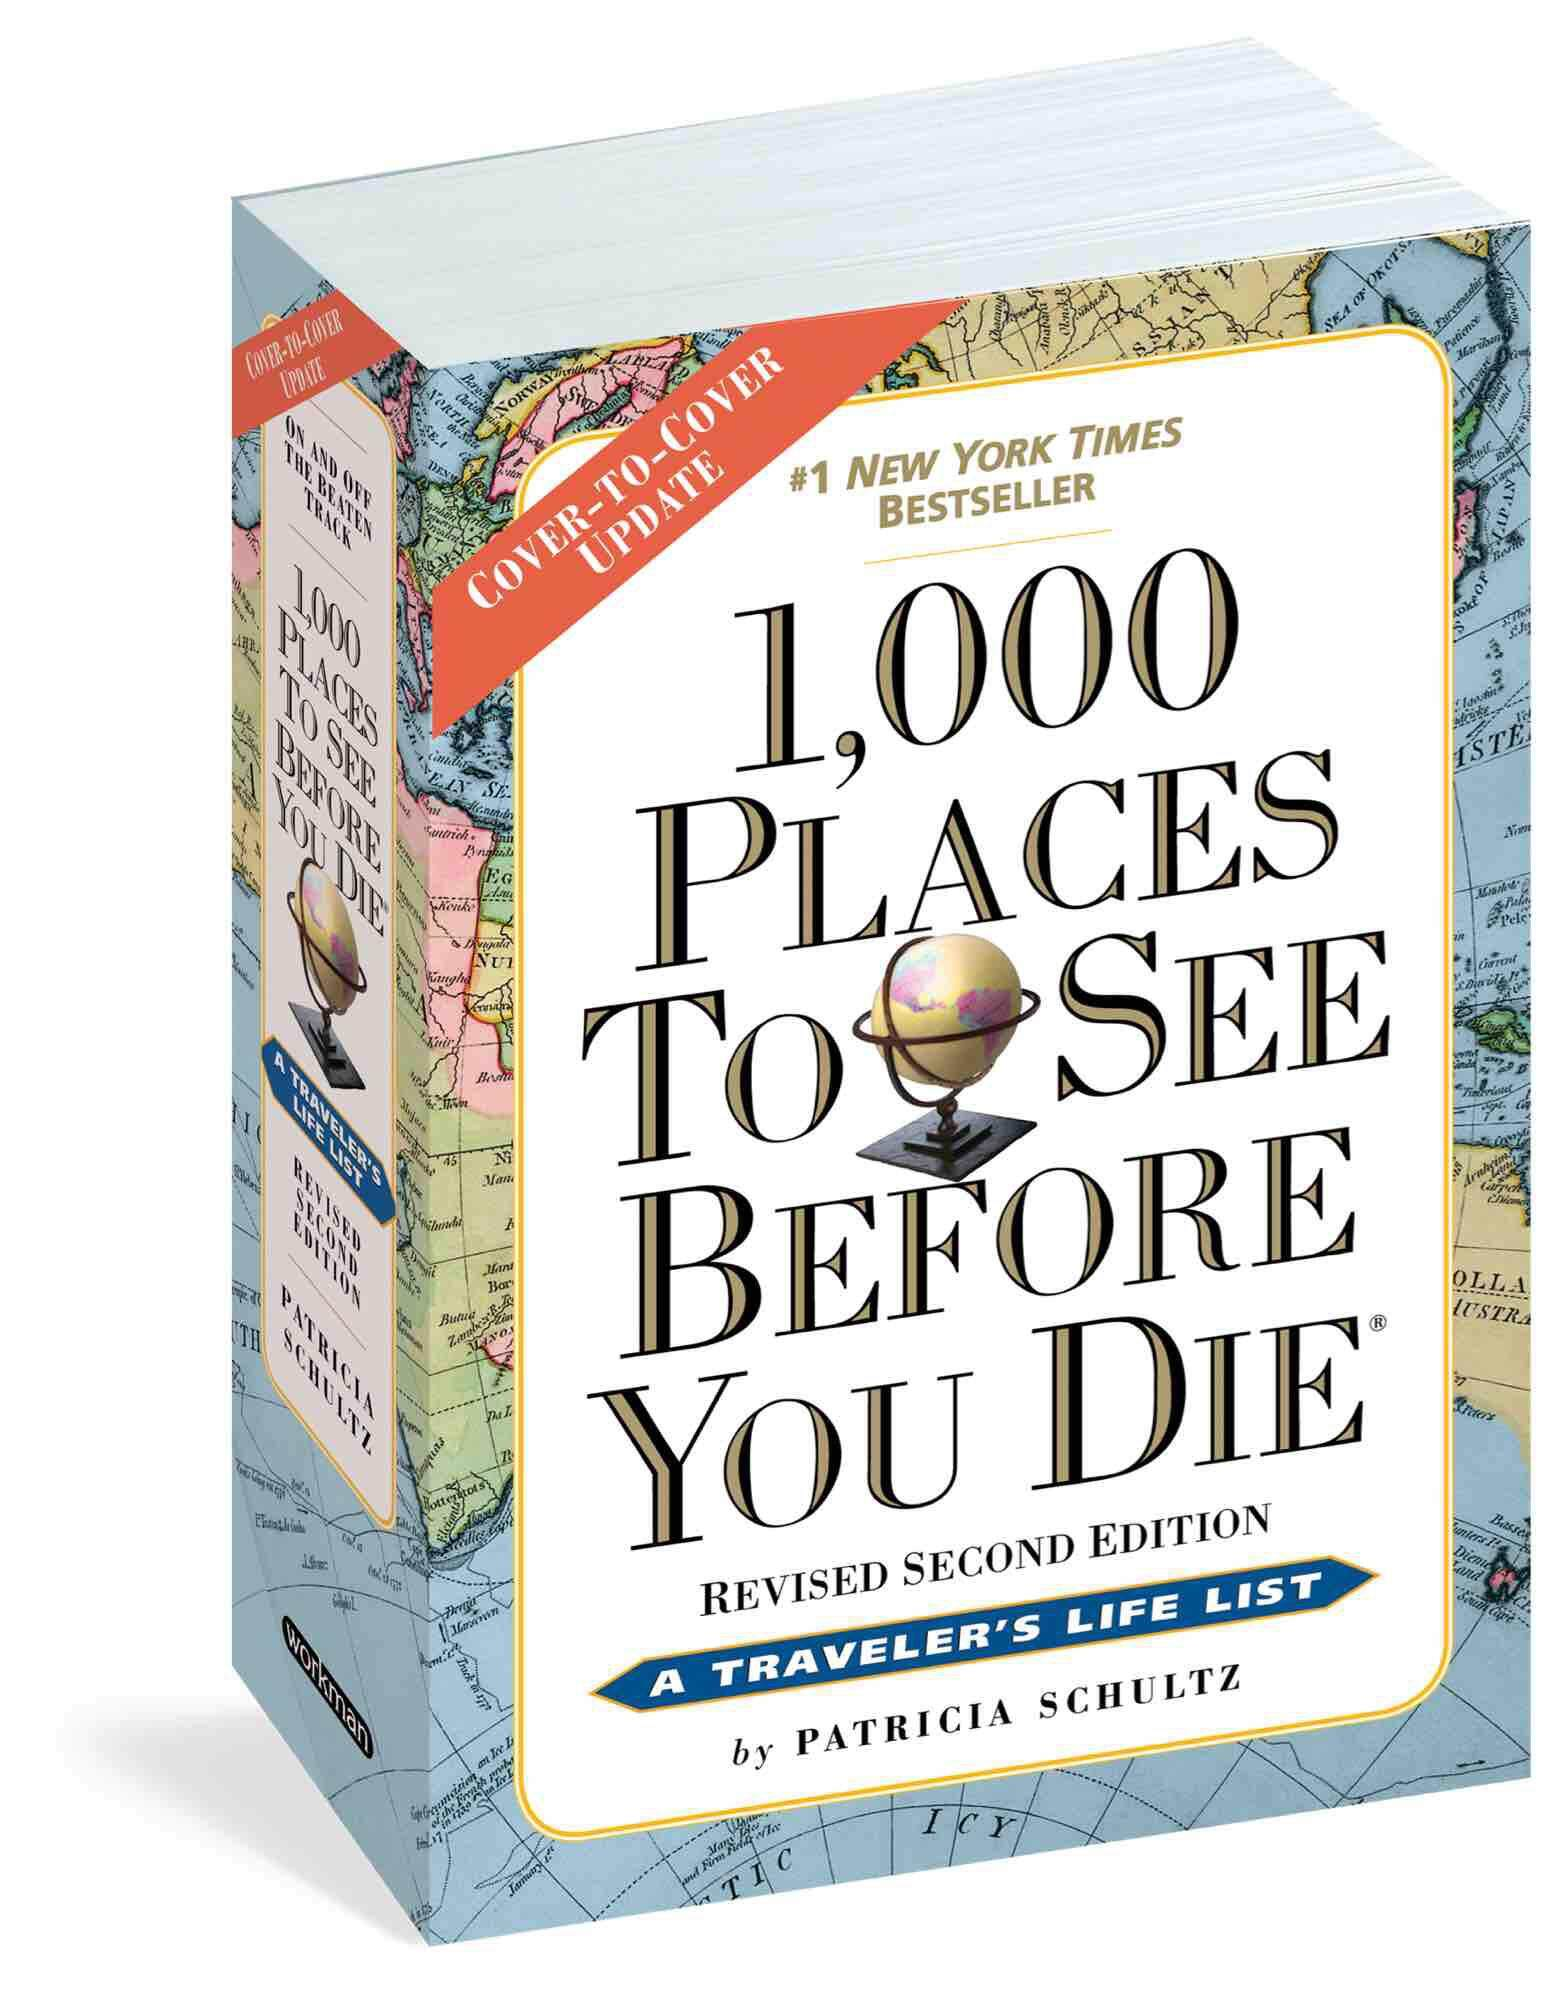 1000 places to visit before you die : Travel guide ebook